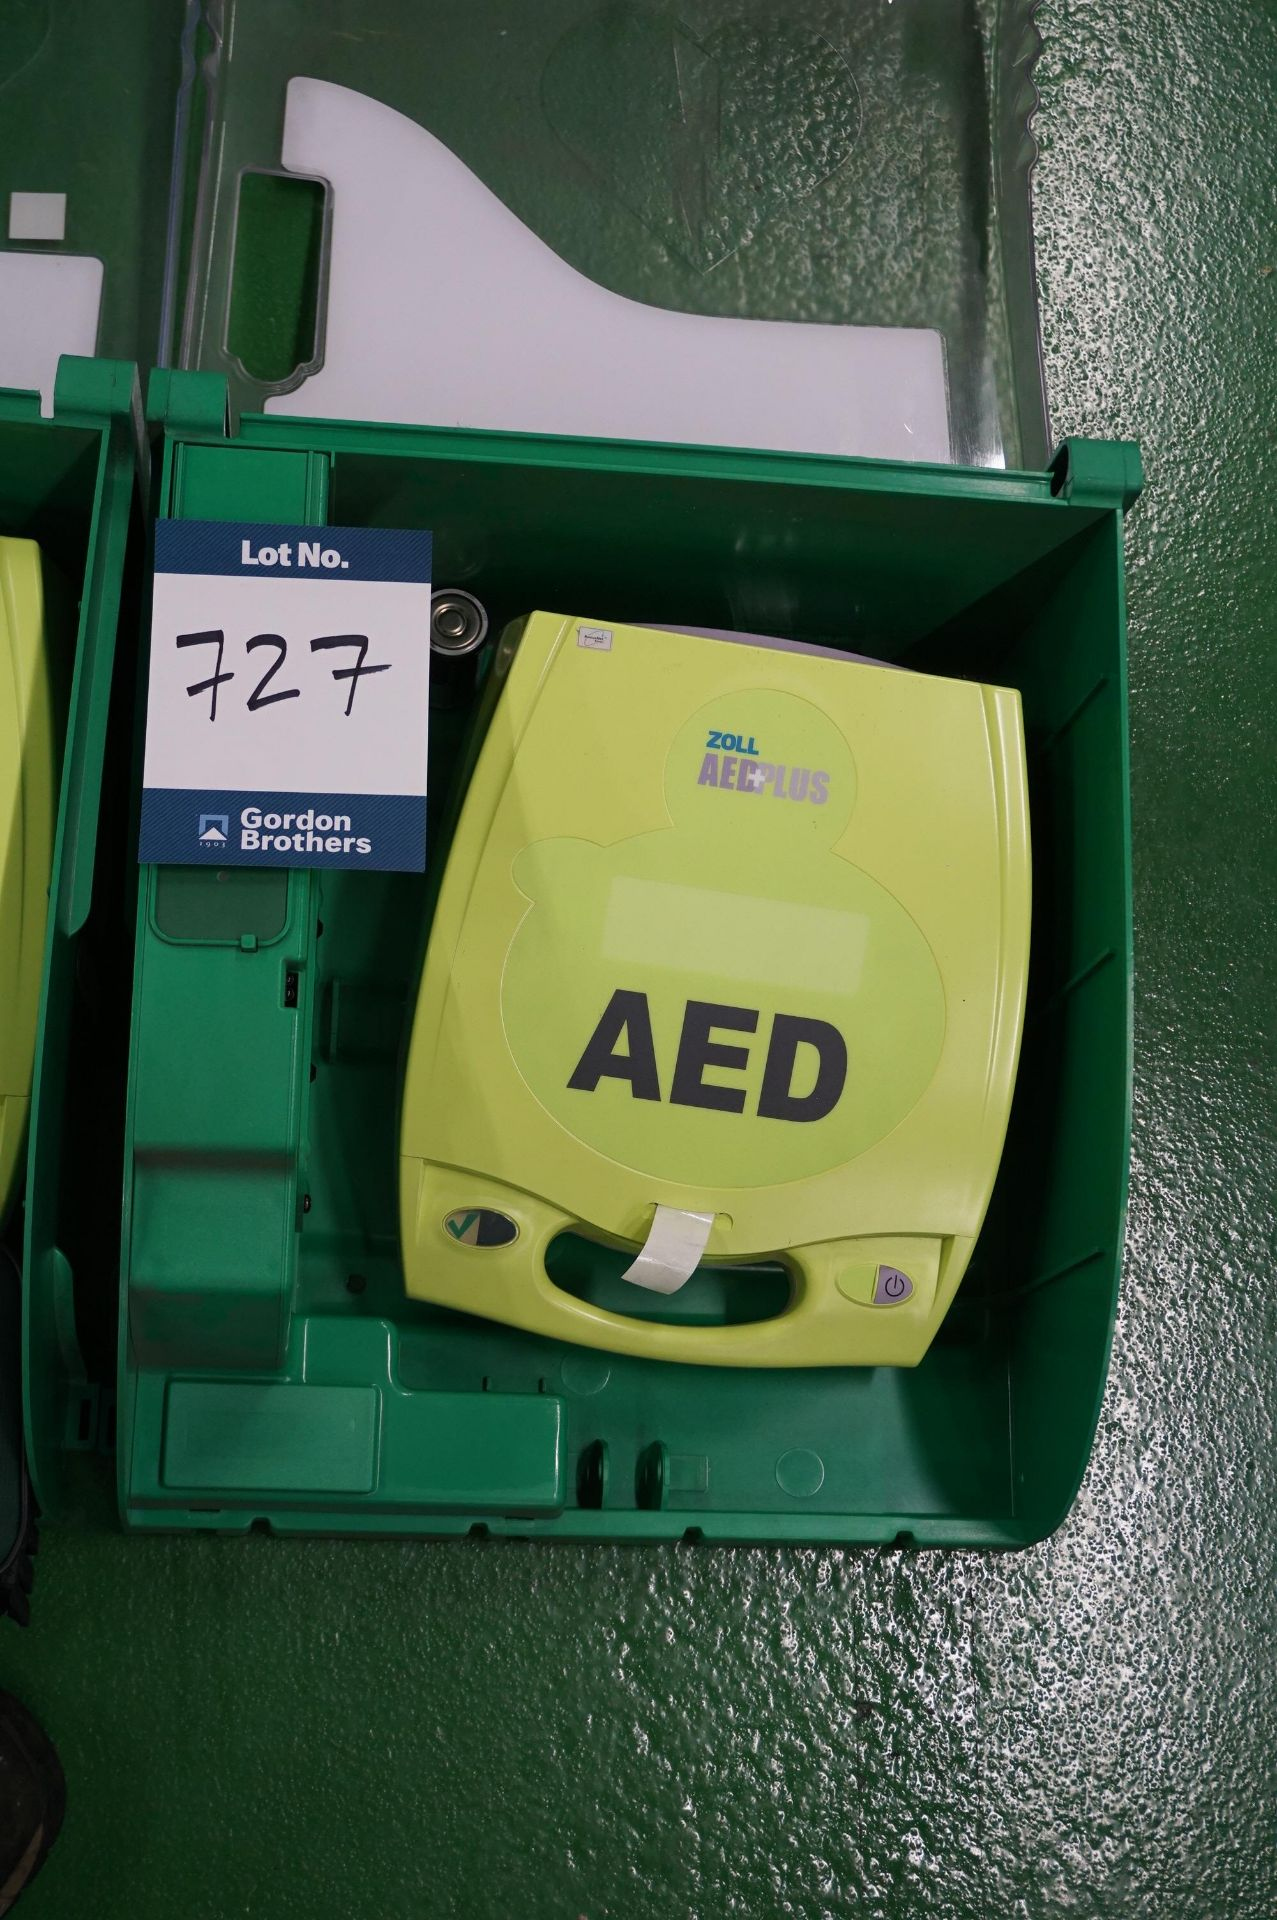 2 x Zoll AEDPLUS Avia 100:X2A100-XX100 battery operated defibrillator - Image 2 of 3